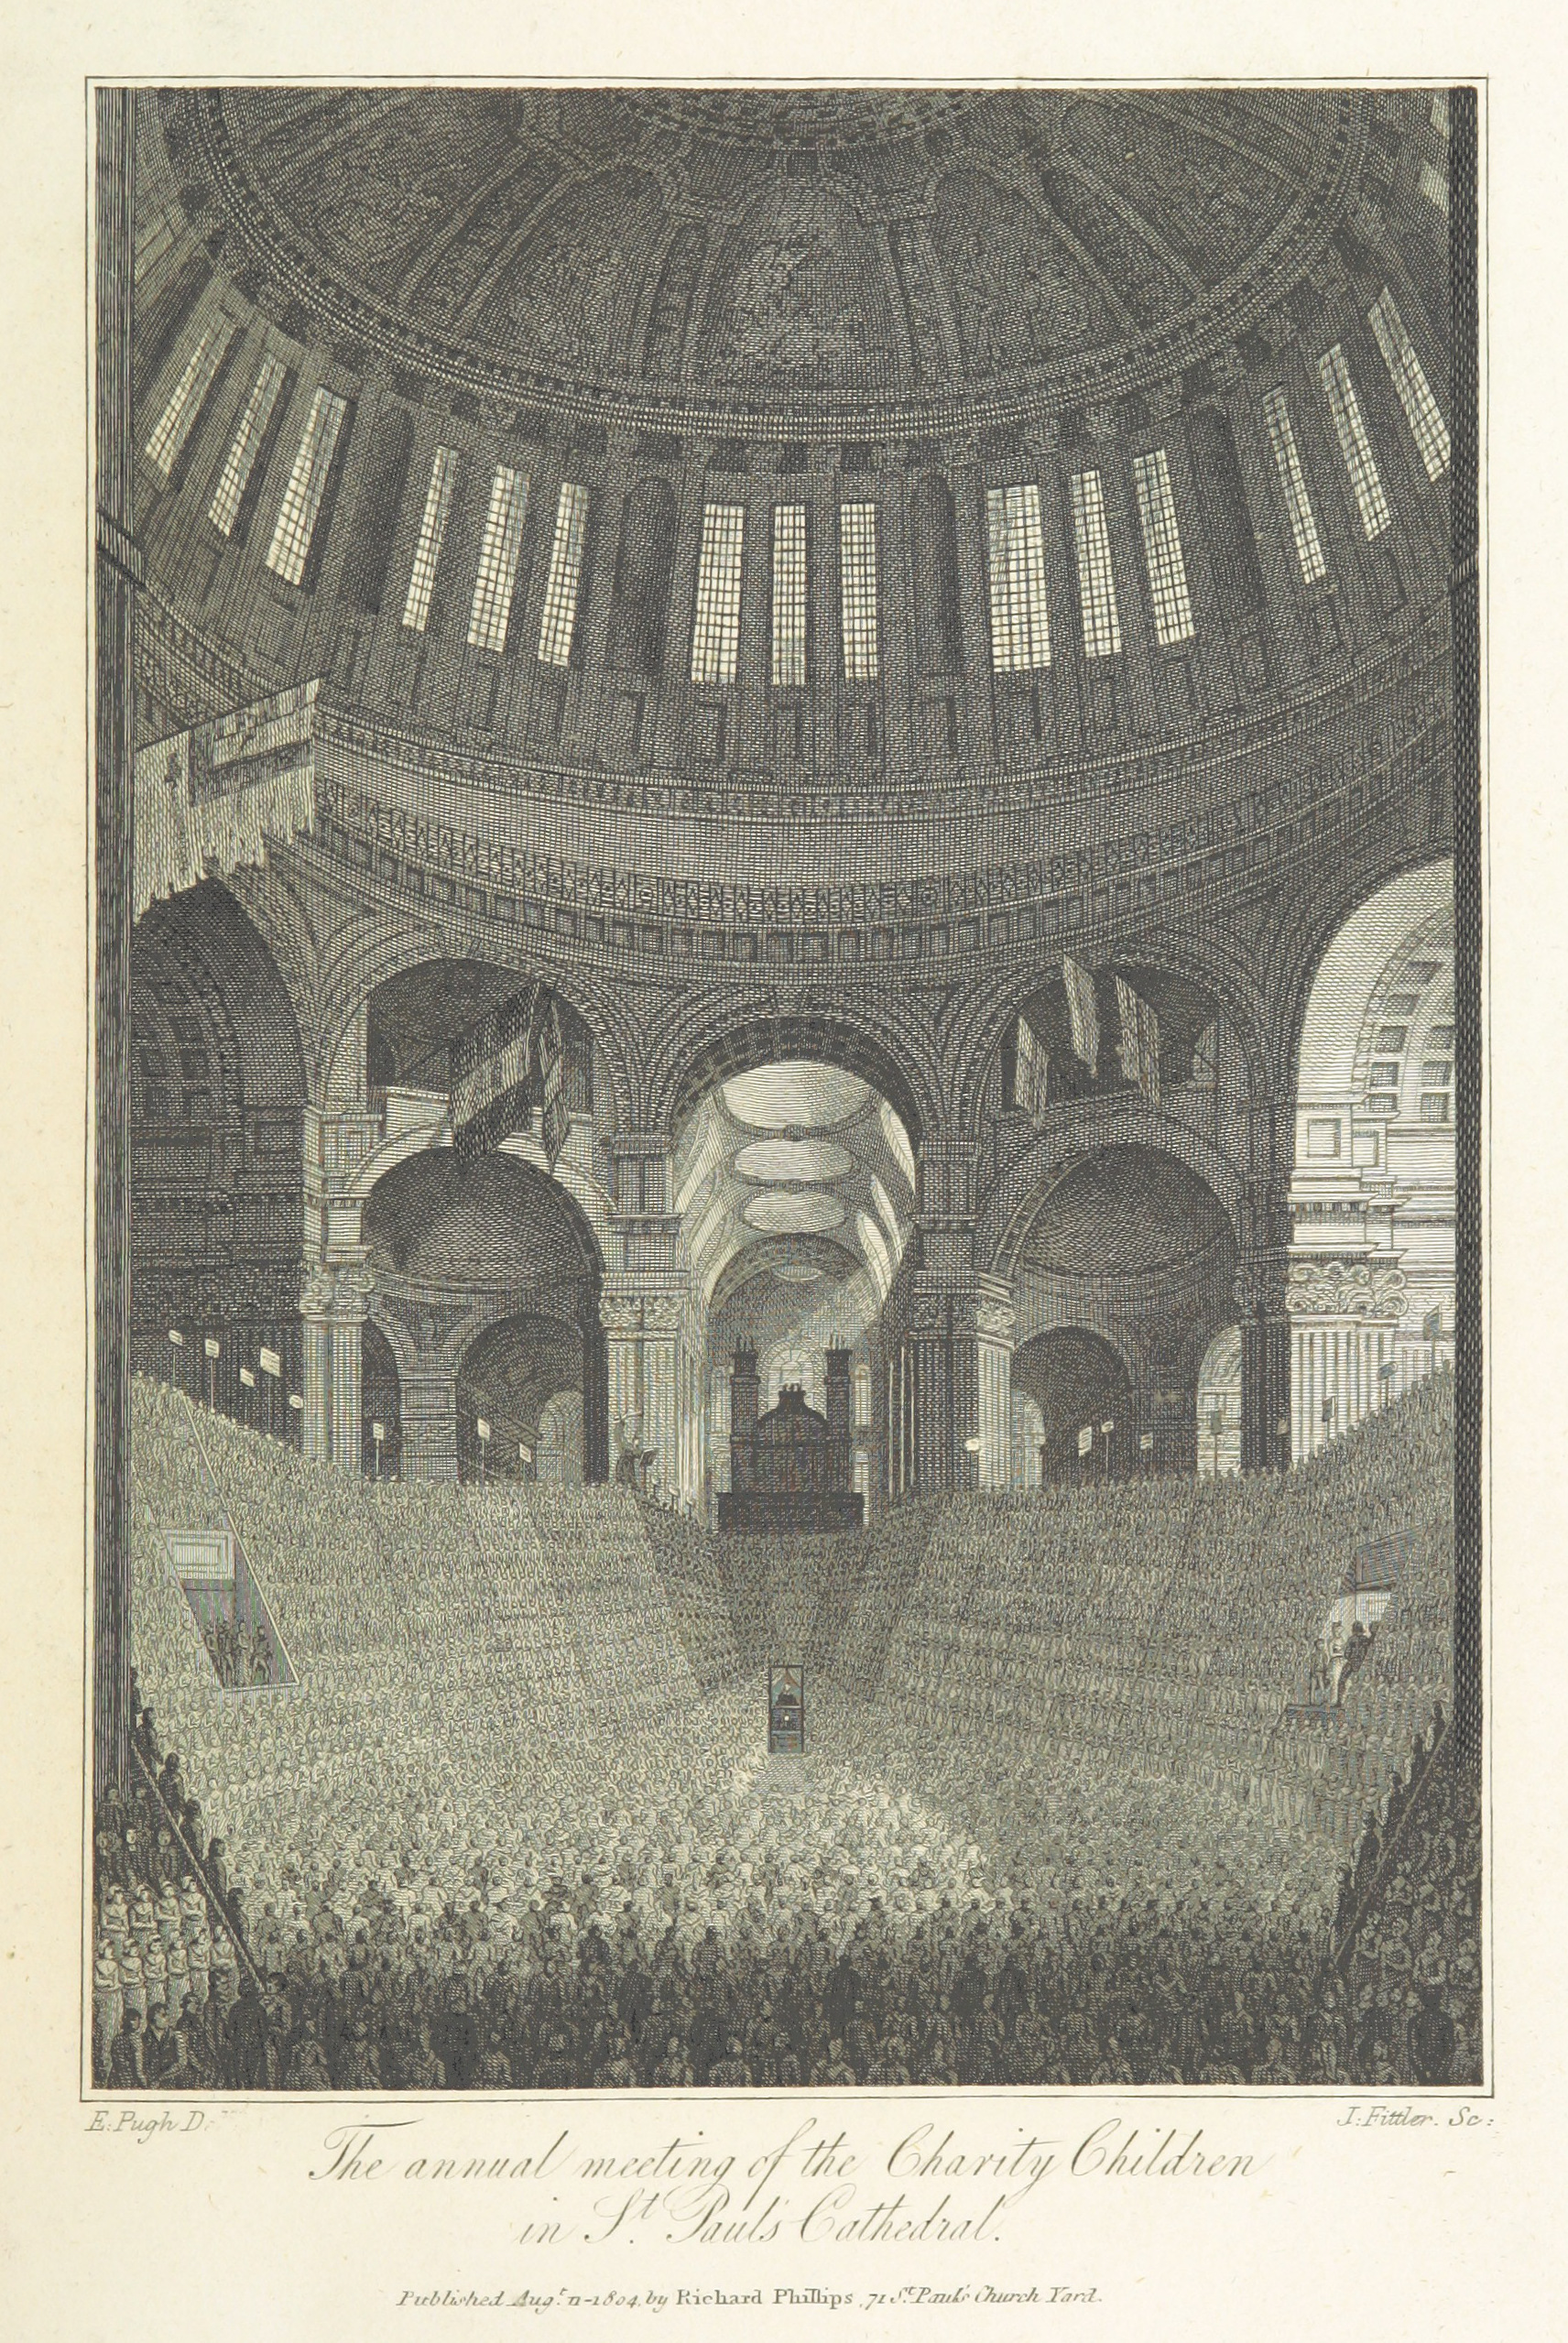 Phillips(1804)_p405_-_The_annual_meeting_of_the_Charity_Children_at_St_Pauls_Cathedral